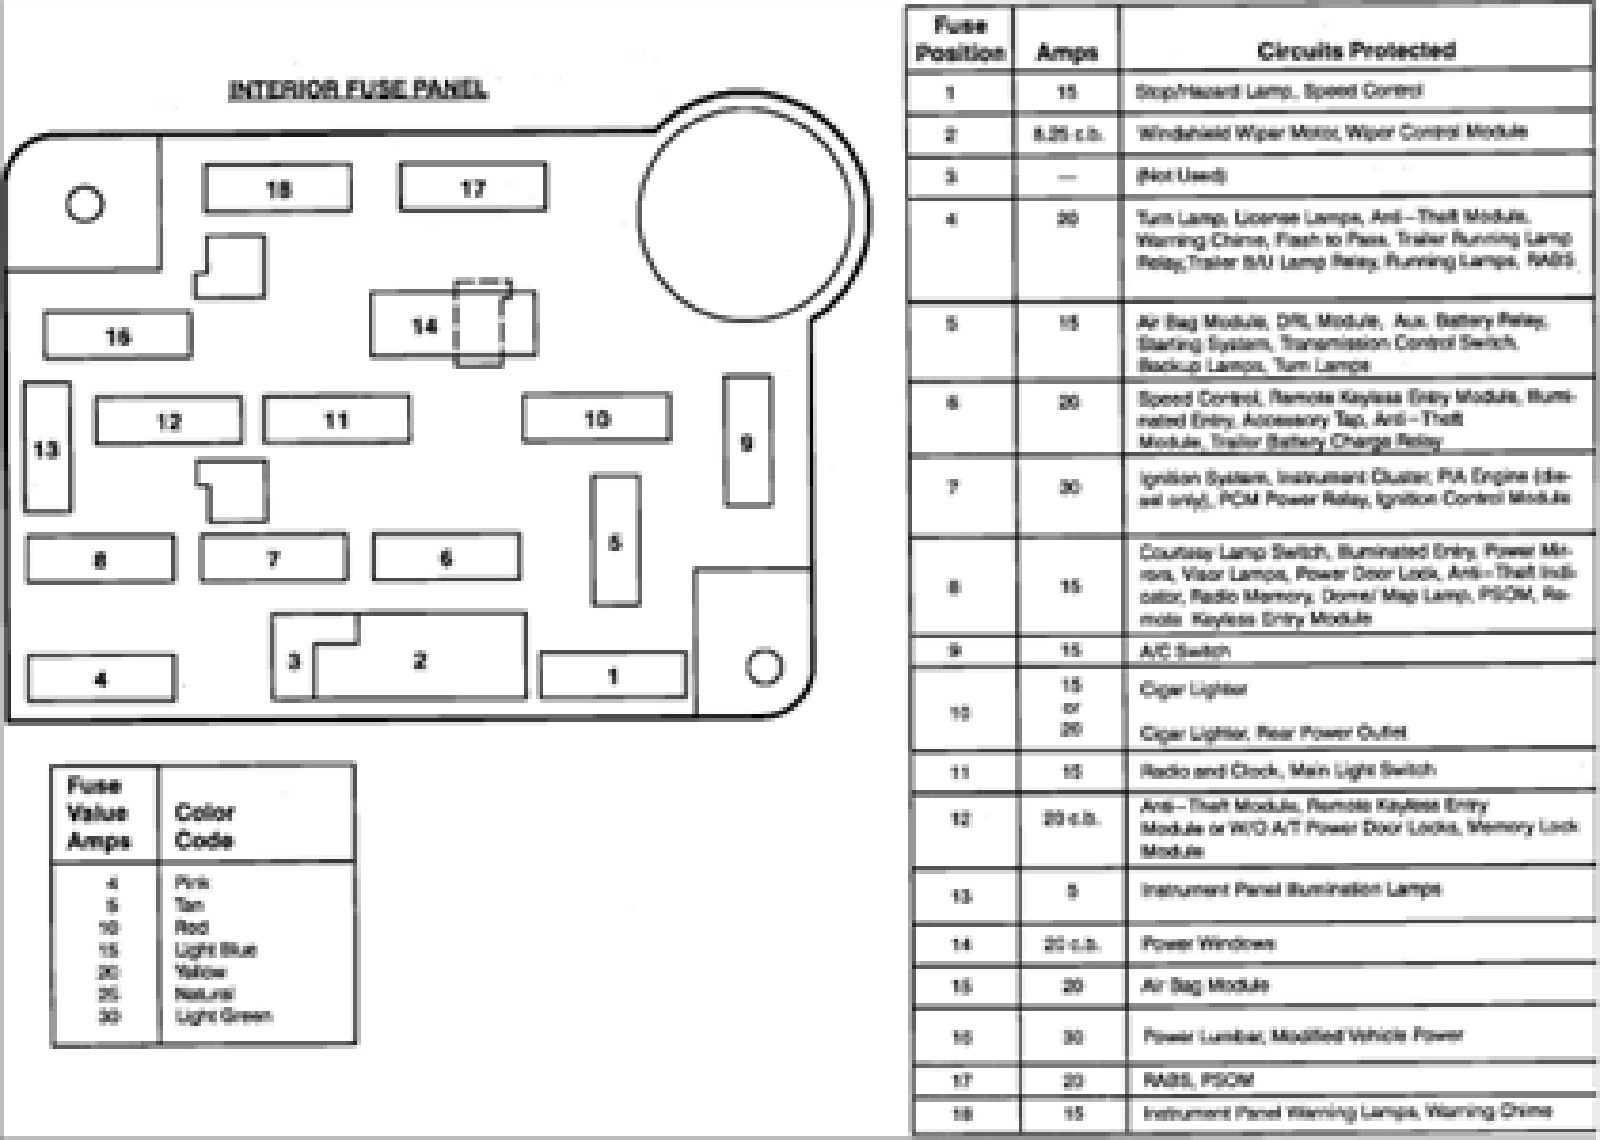 1993 chevy s10 stereo wiring diagram honeywell smartfit y plan ford e150 e 150 questions fuse for a econoline vanfuse